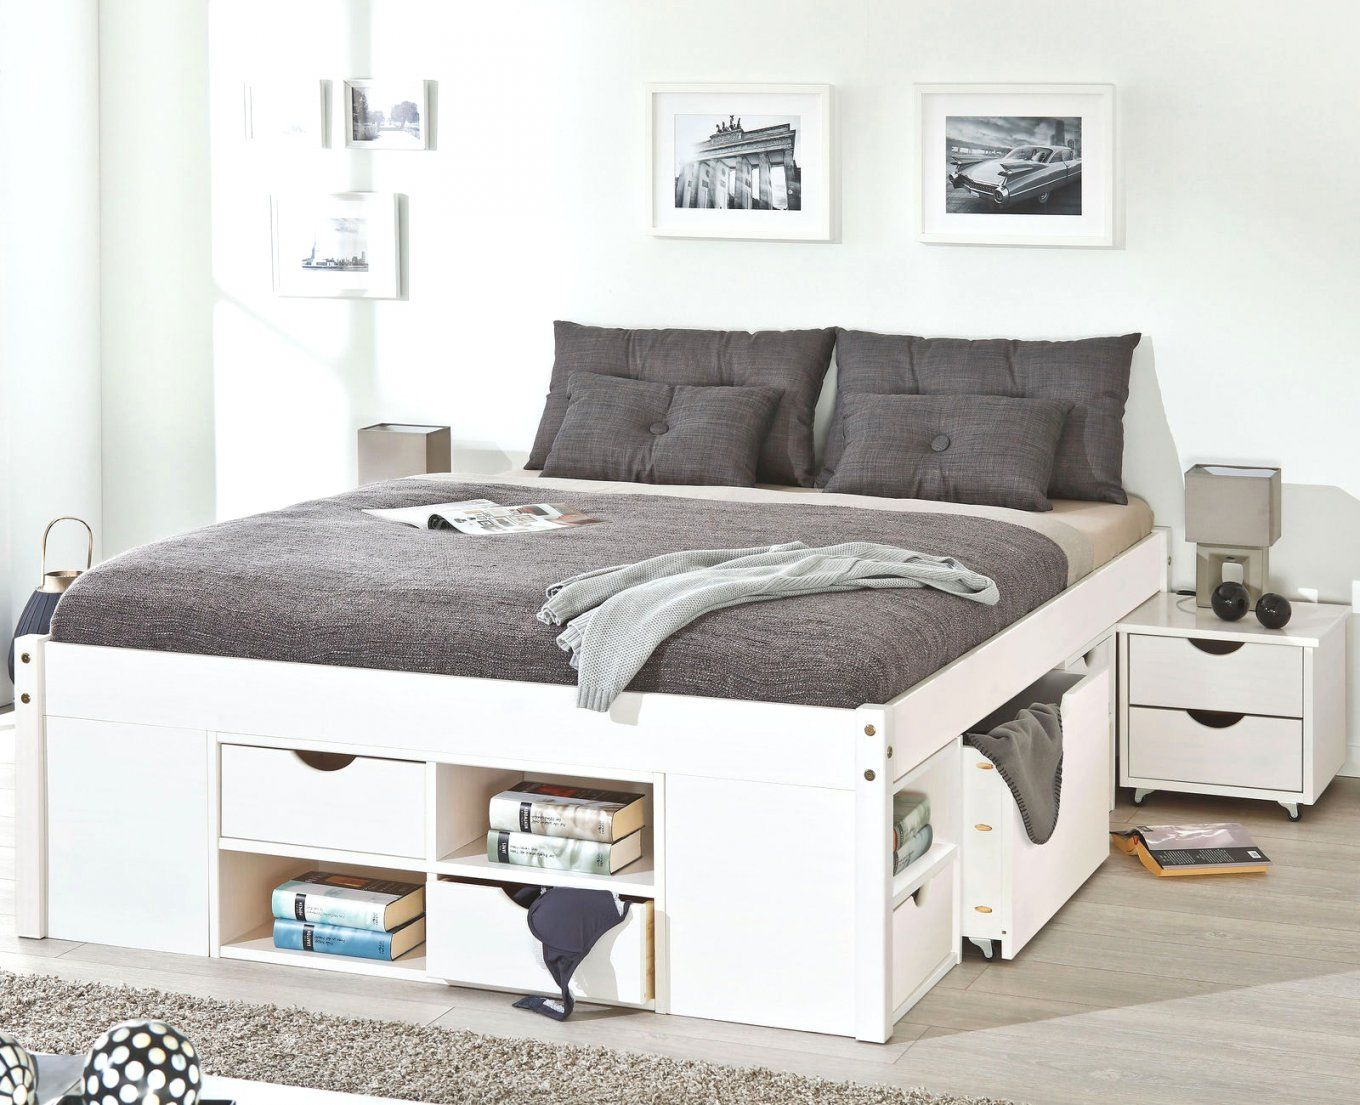 wundersch ne inspiration was kostet ein gutes bett und. Black Bedroom Furniture Sets. Home Design Ideas